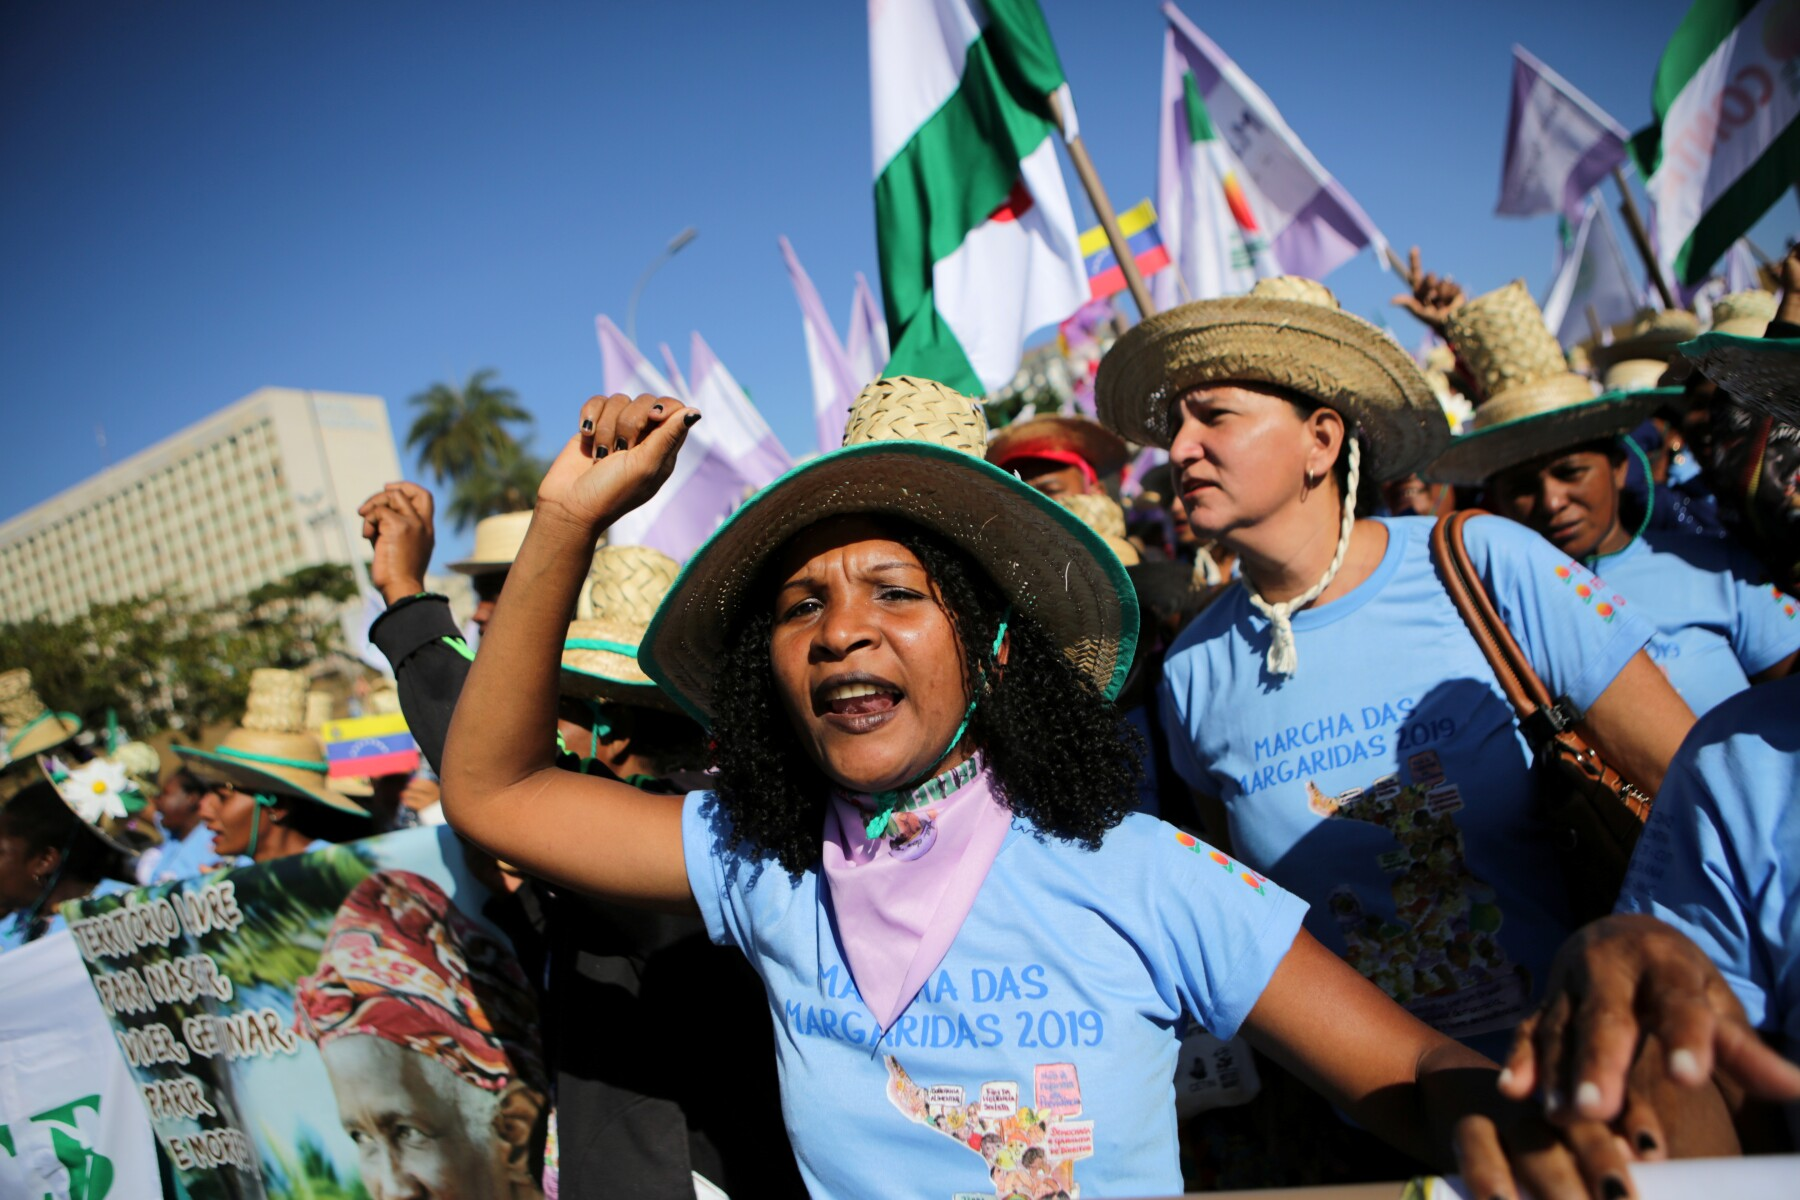 March of the Daisies, calling for equal rights for women working in rural areas and forests, in Brasilia